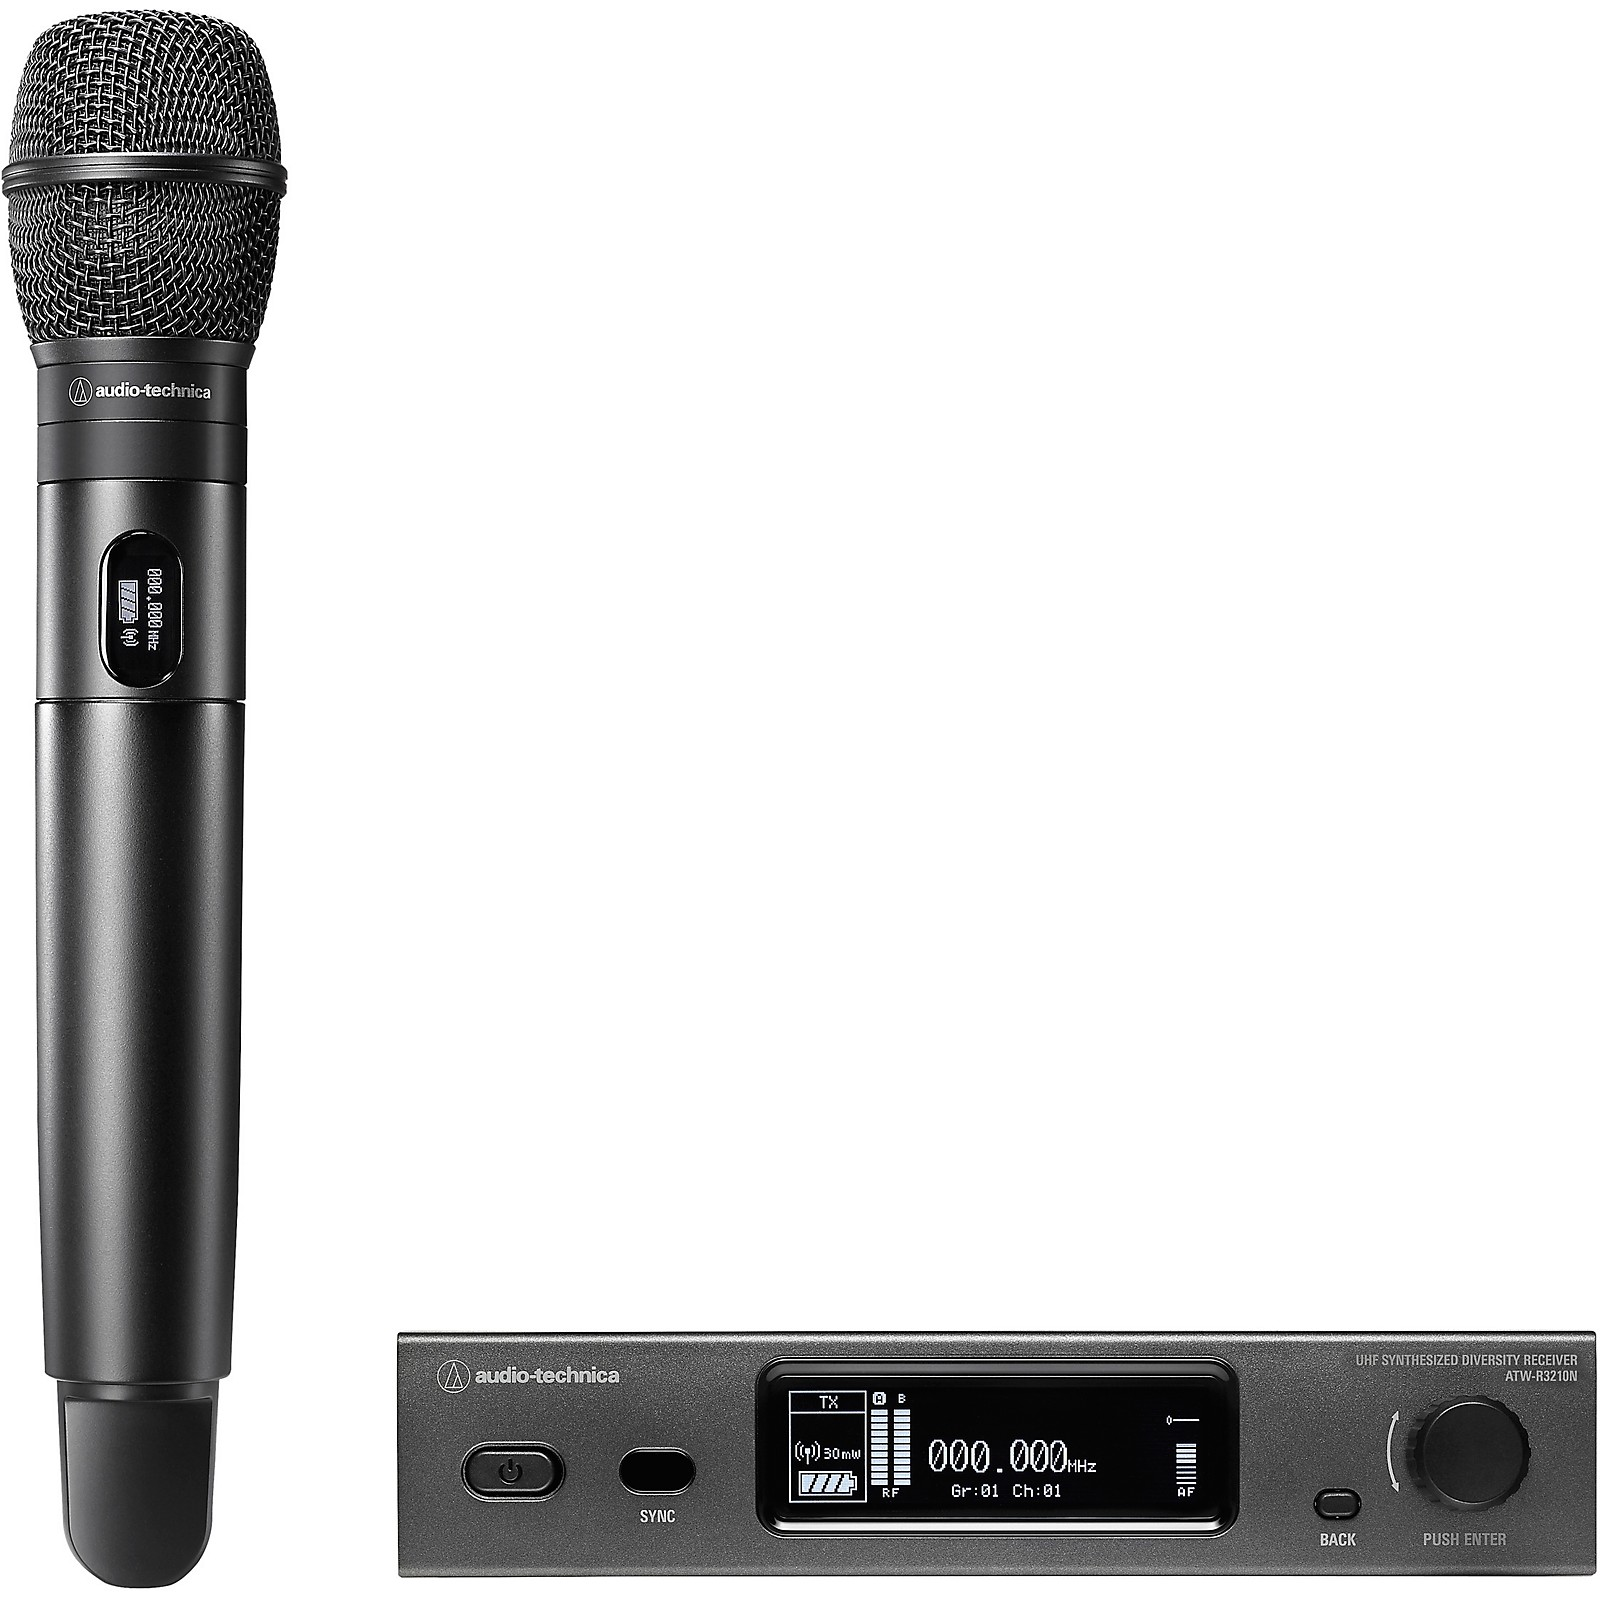 Audio-Technica 3000 Series (4th Gen) Network Enabled UHF Wireless with ATW-C710 Cardioid Dynamic Microphone Capsule